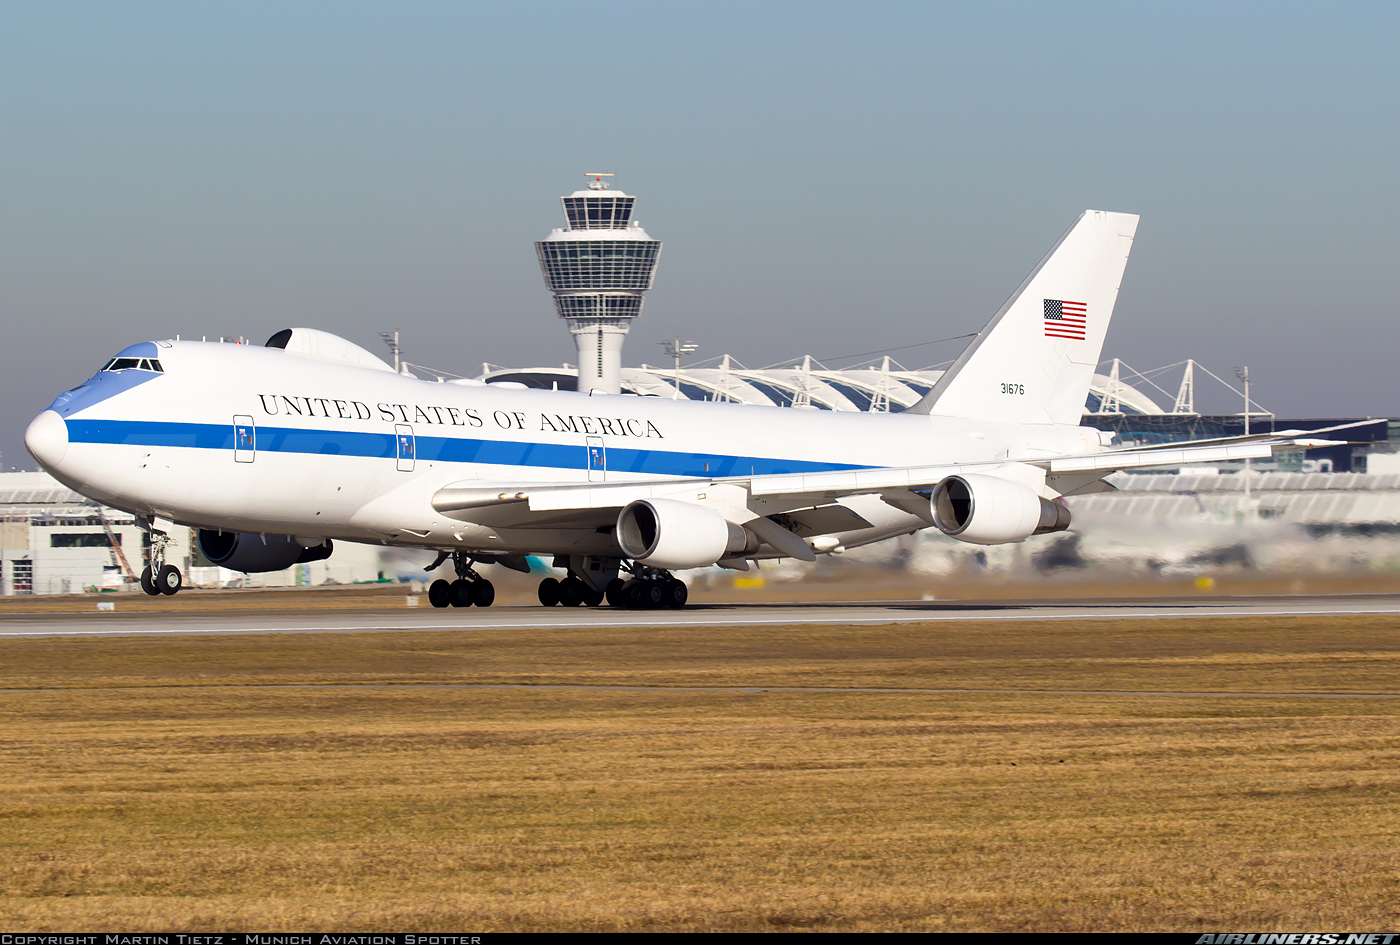 Boeing E-4B (747-200B) - USA - Air Force | Aviation Photo #5413809 | Airliners.net